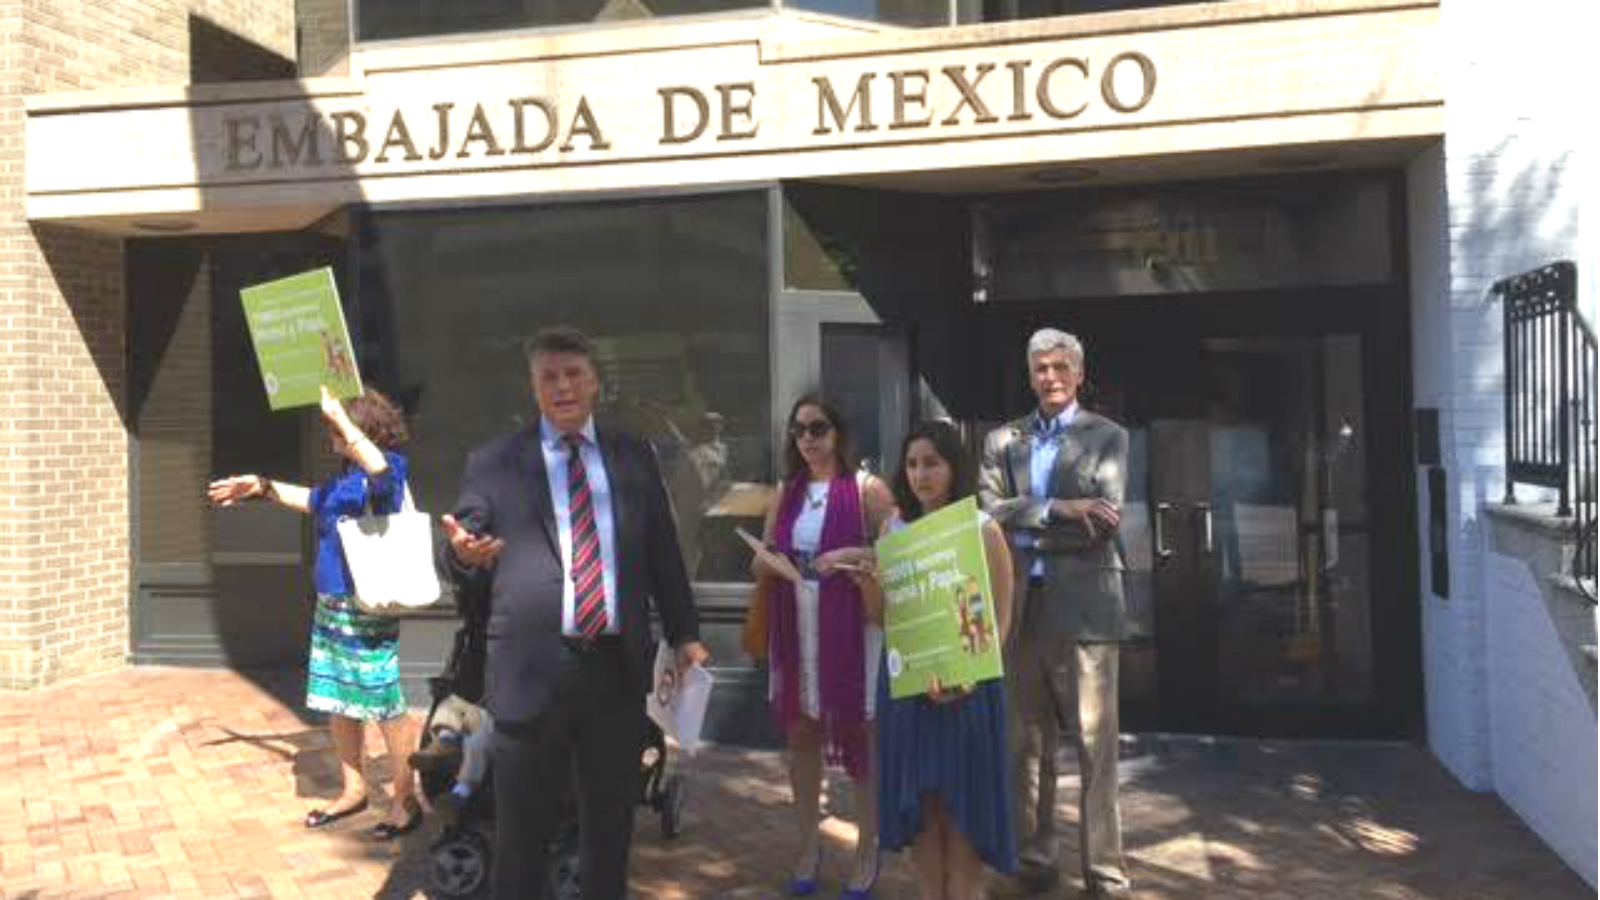 Handful of Extremists Protest Marriage Equality at Mexican Embassy